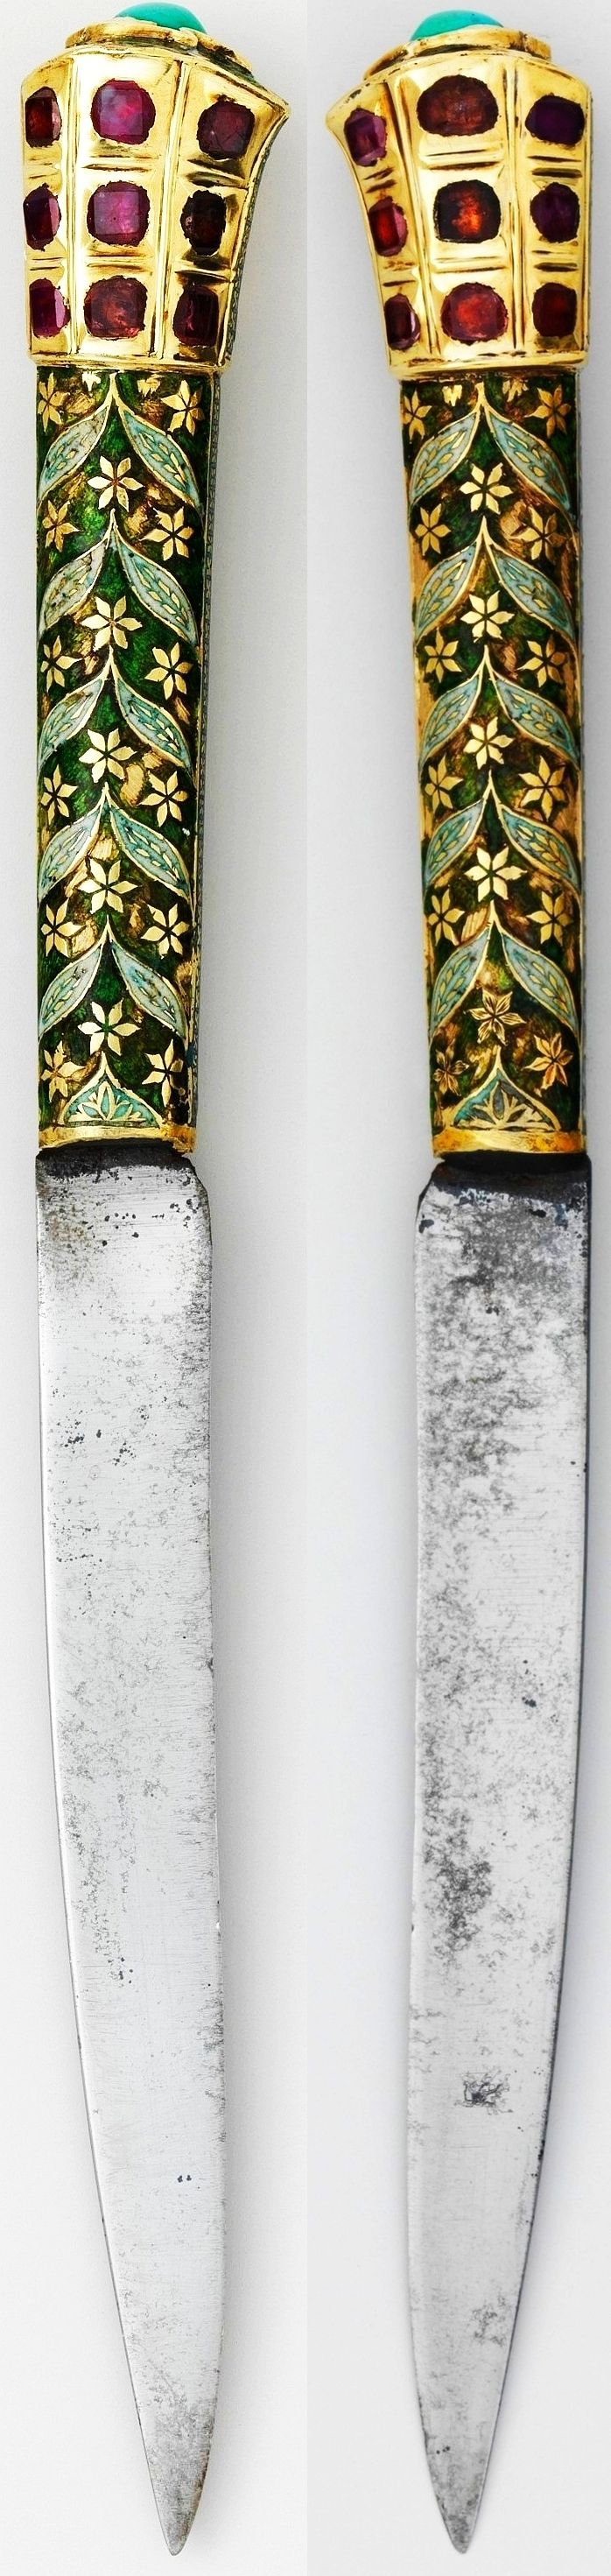 Indian dagger, 18th century, silver gilt; enameled and set with rubies over foil and turquoise, 7 in., Met Museum.